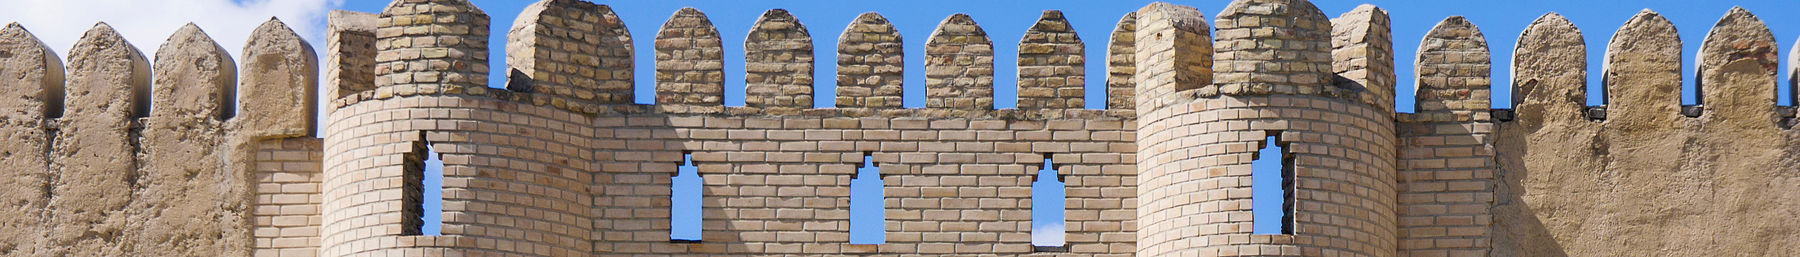 Turkistan banner Outer walls of the tomb yard.jpg